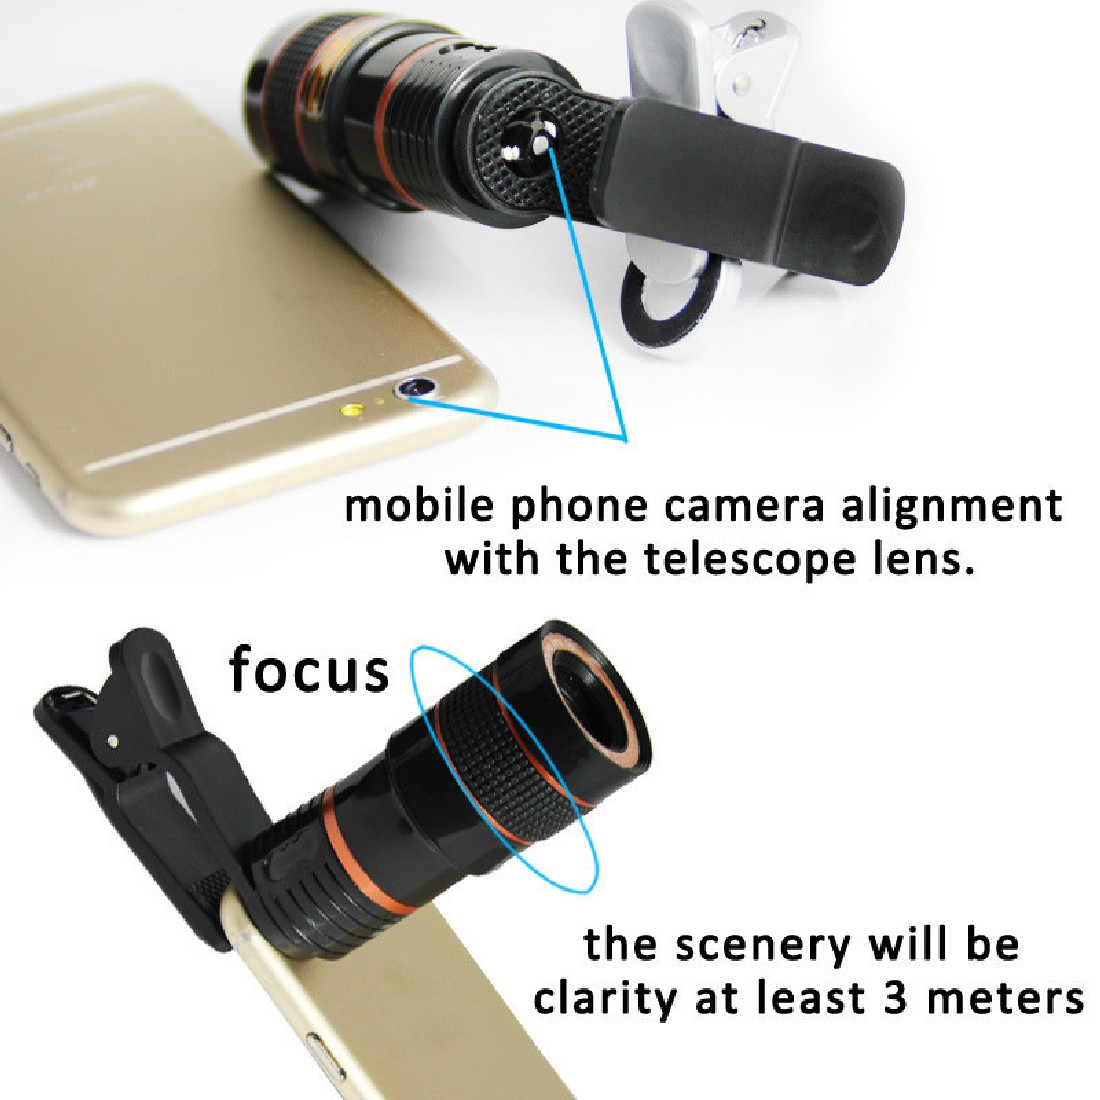 Universal 8X Zoom Telescope Telephoto Camera Lens Ikeacasa Free Shipping for Mobile Phone iPhone Samsung Galaxy Note